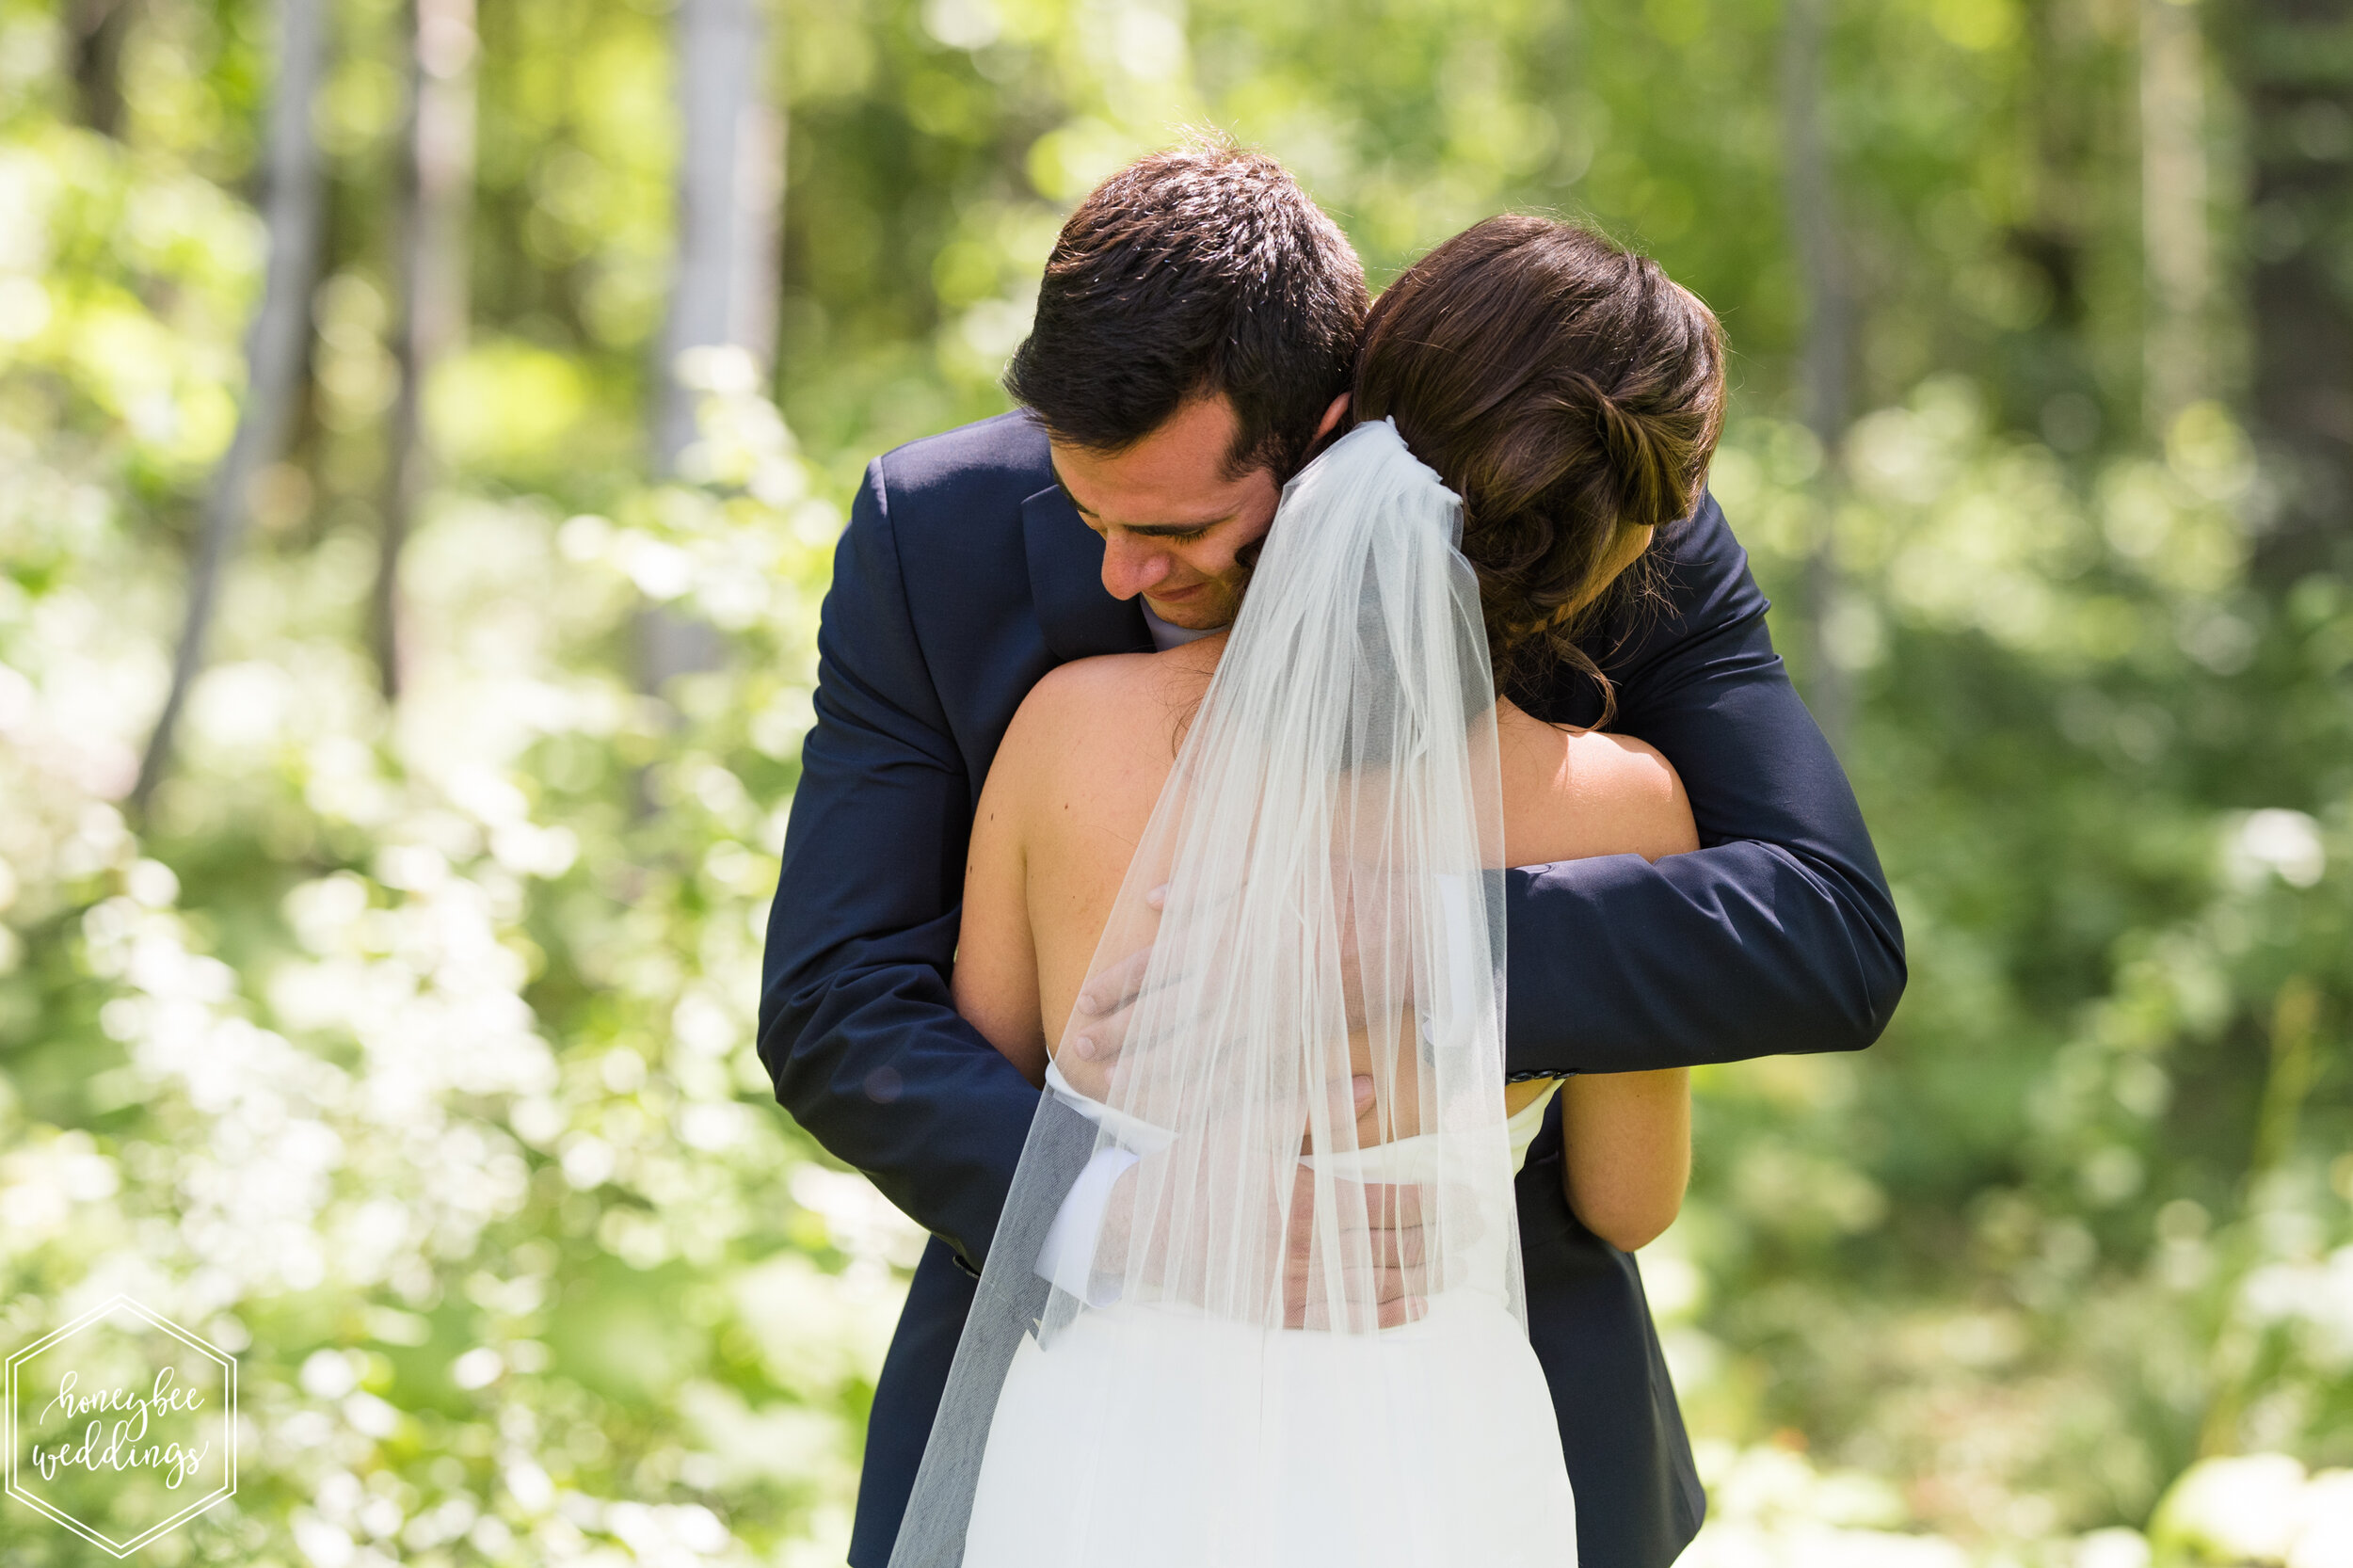 016Glacier National Park Wedding_Glacier Outdoor Center_Honeybee Weddings_Anna & Seth_July 21, 2019-762.jpg